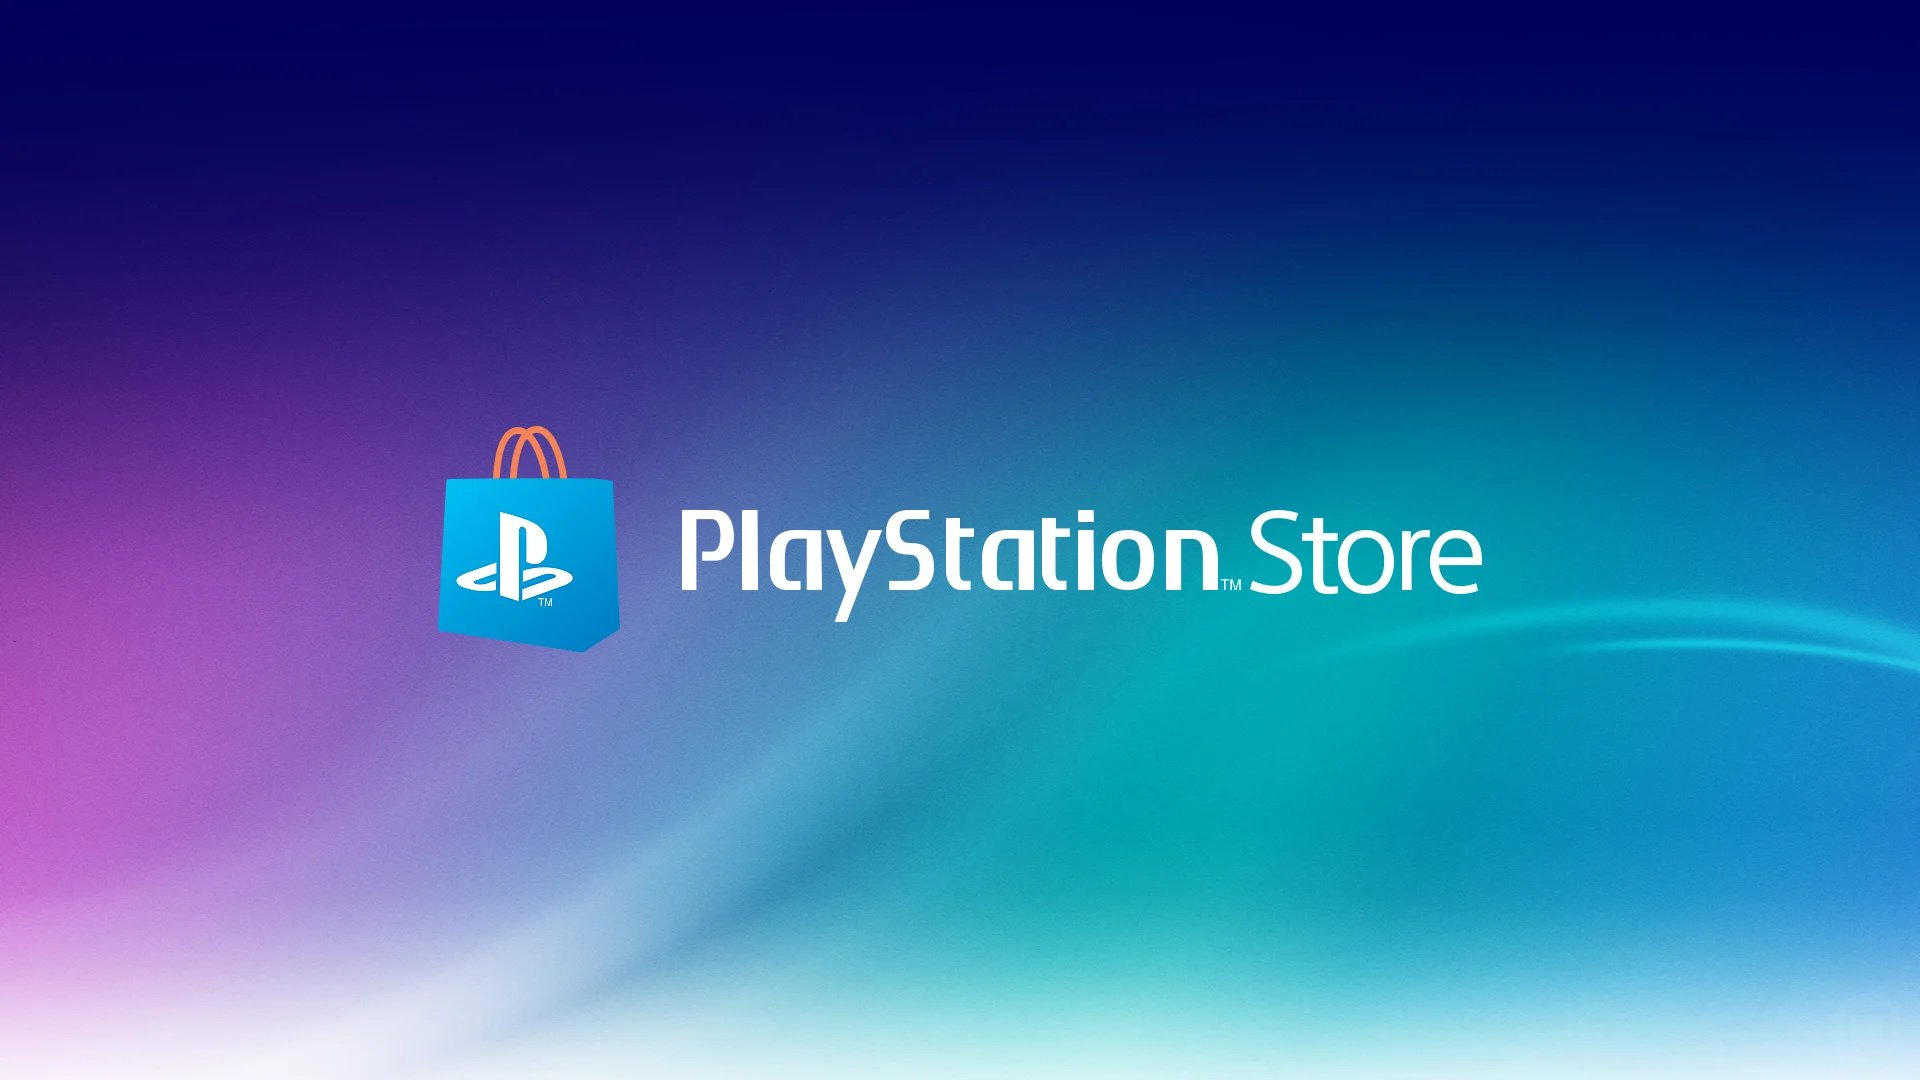 ps-store-playstation-store-1.original.jp